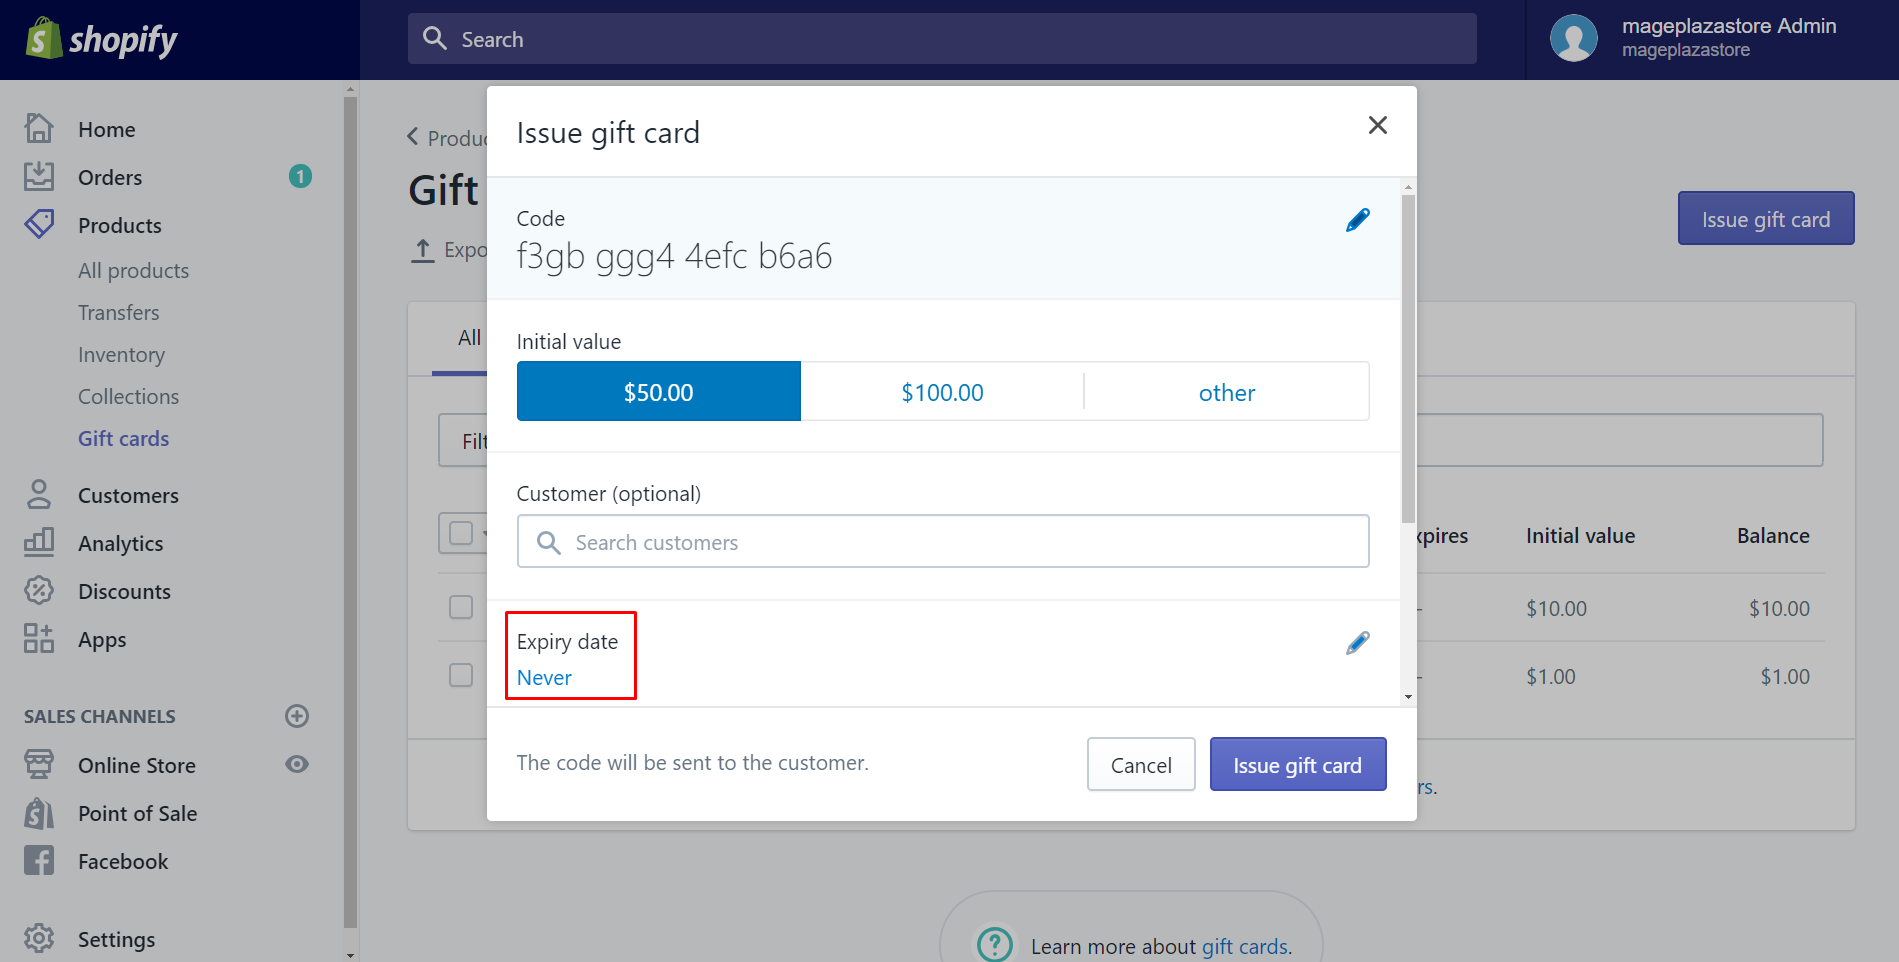 How to issue a Gift Card on Shopify